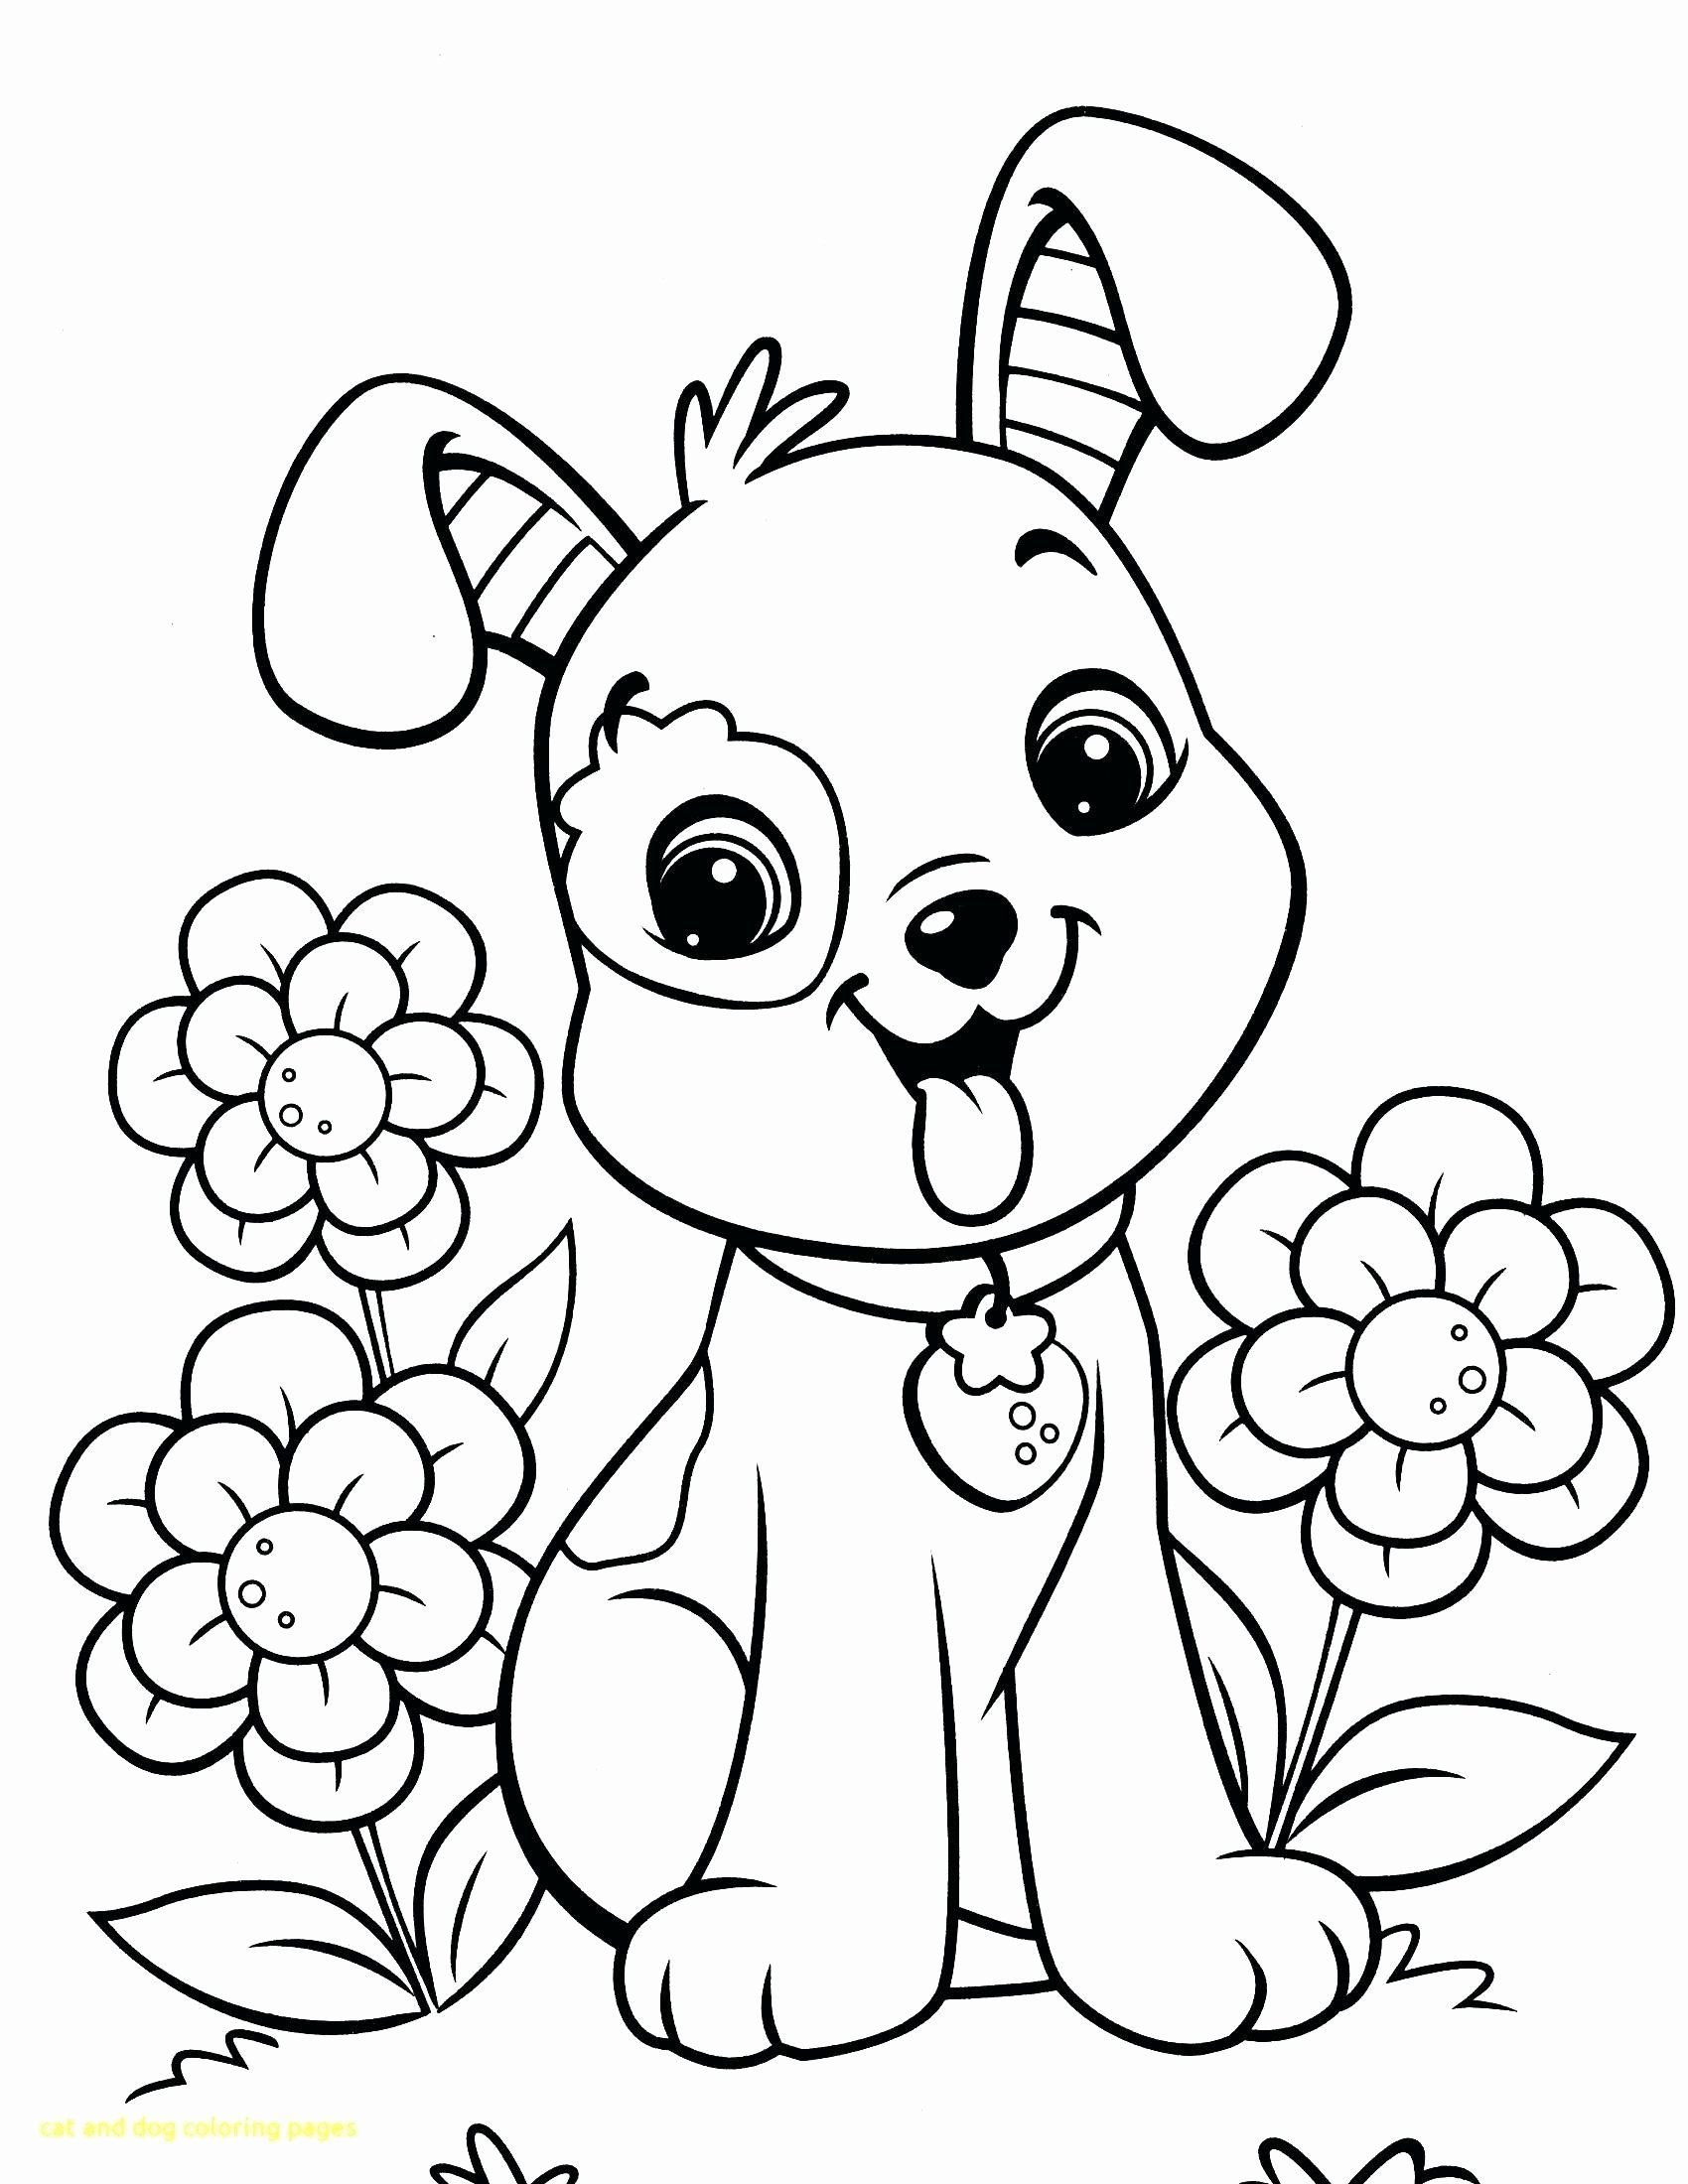 Cat Coloring Pages Online In 2020 Puppy Coloring Pages Valentine Coloring Pages Dog Coloring Page